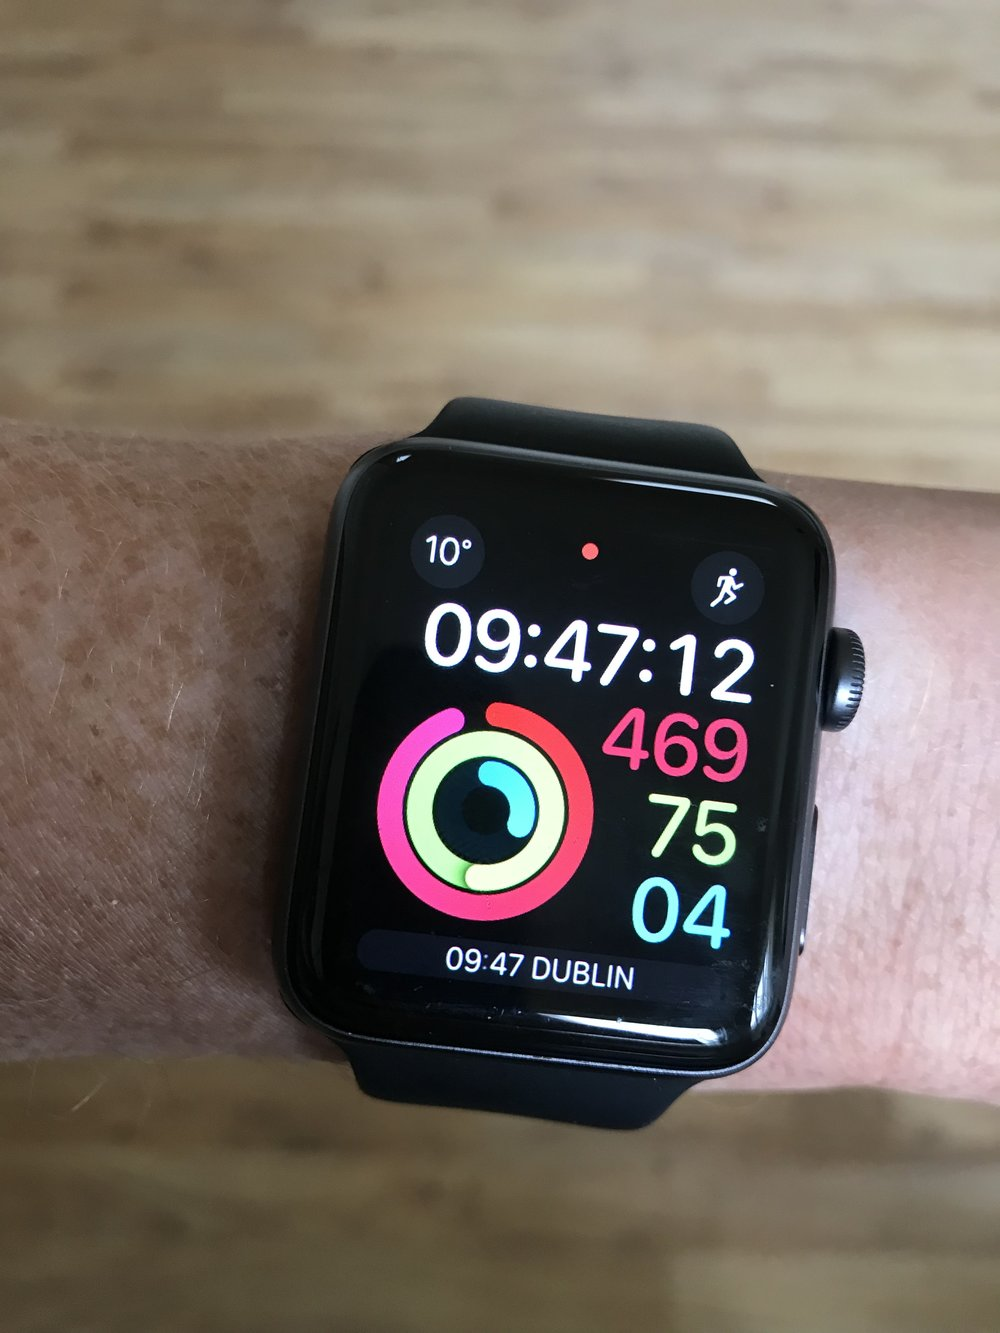 Move Calories, Exercise Minutes and Stand hours displayed on Apple Watch